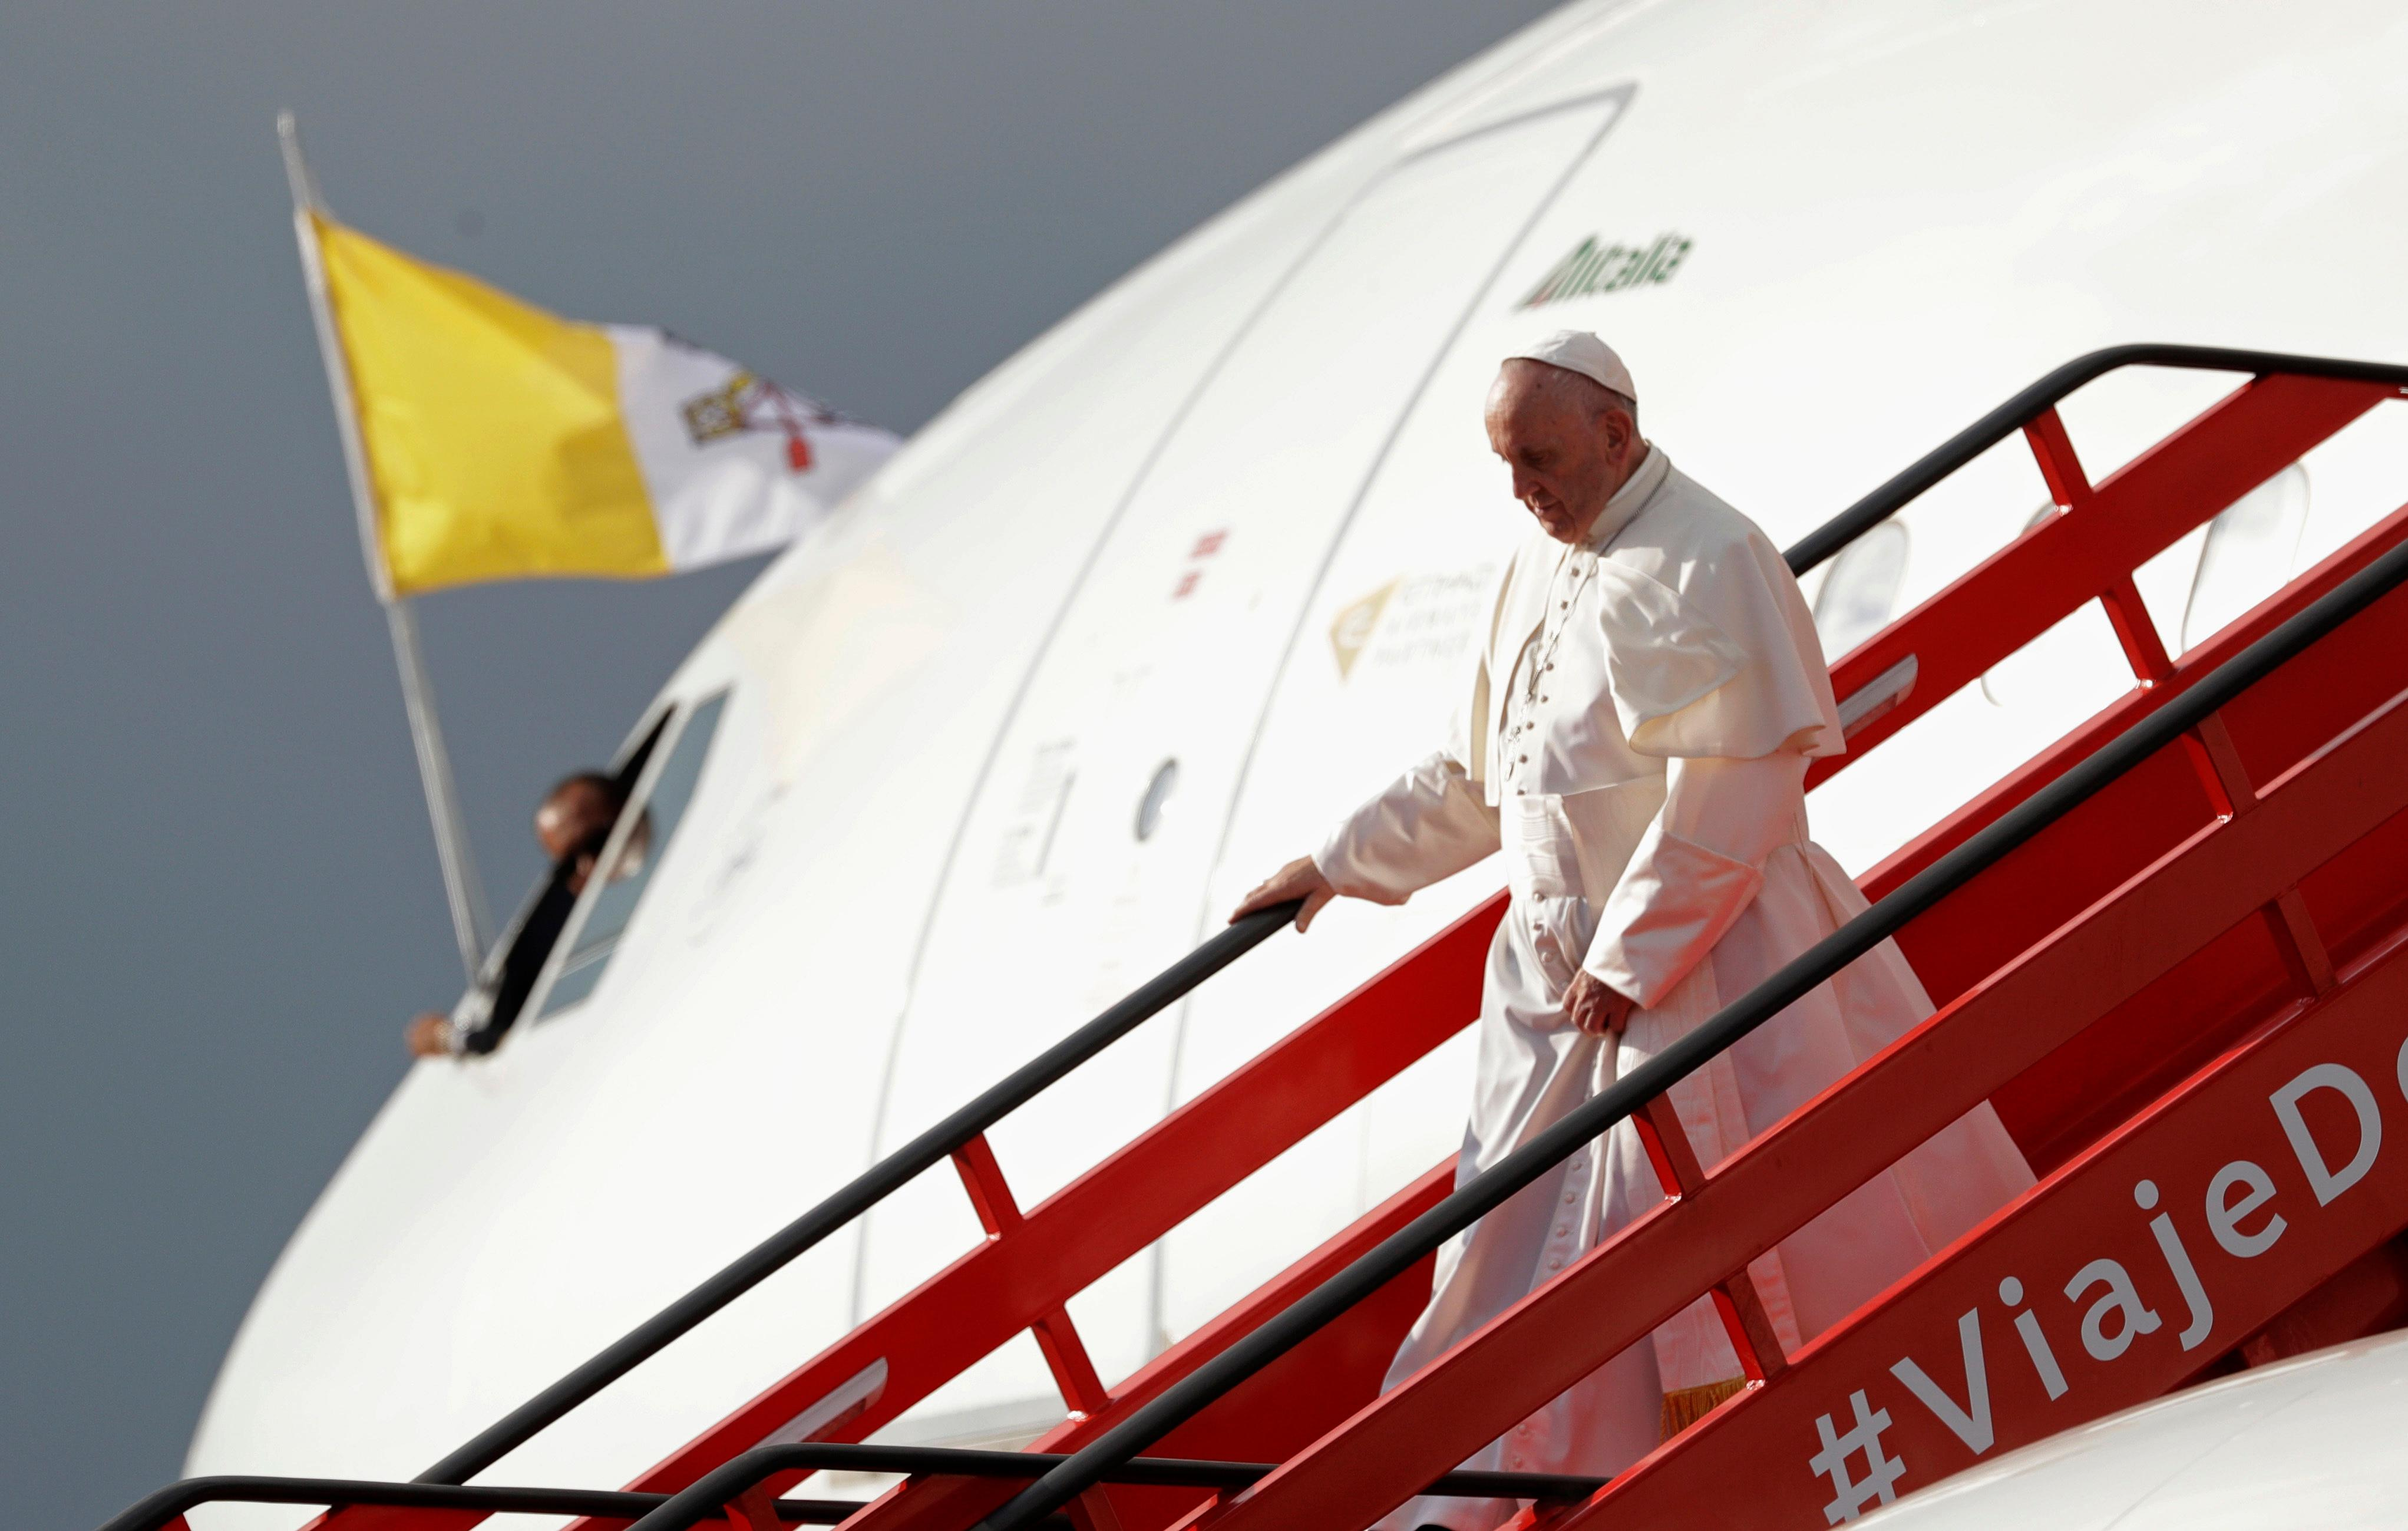 Pope Francis deplanes at El Dorado airport in Bogota, Colombia, Wednesday, Sept. 6, 2017. Pope Francis has arrived in Colombia for a five-day visit. (AP Photo/Andrew Medichini)